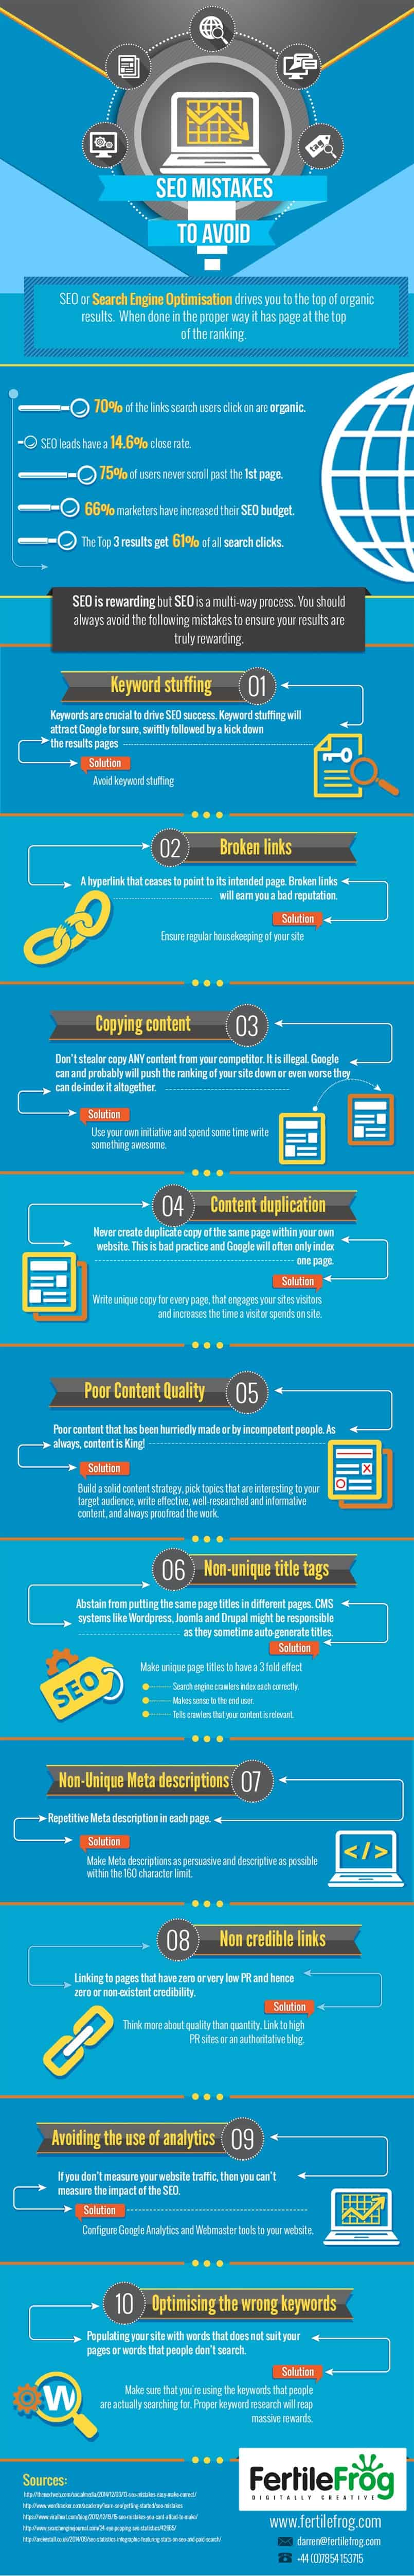 SEO Mistakes to avoid infographic